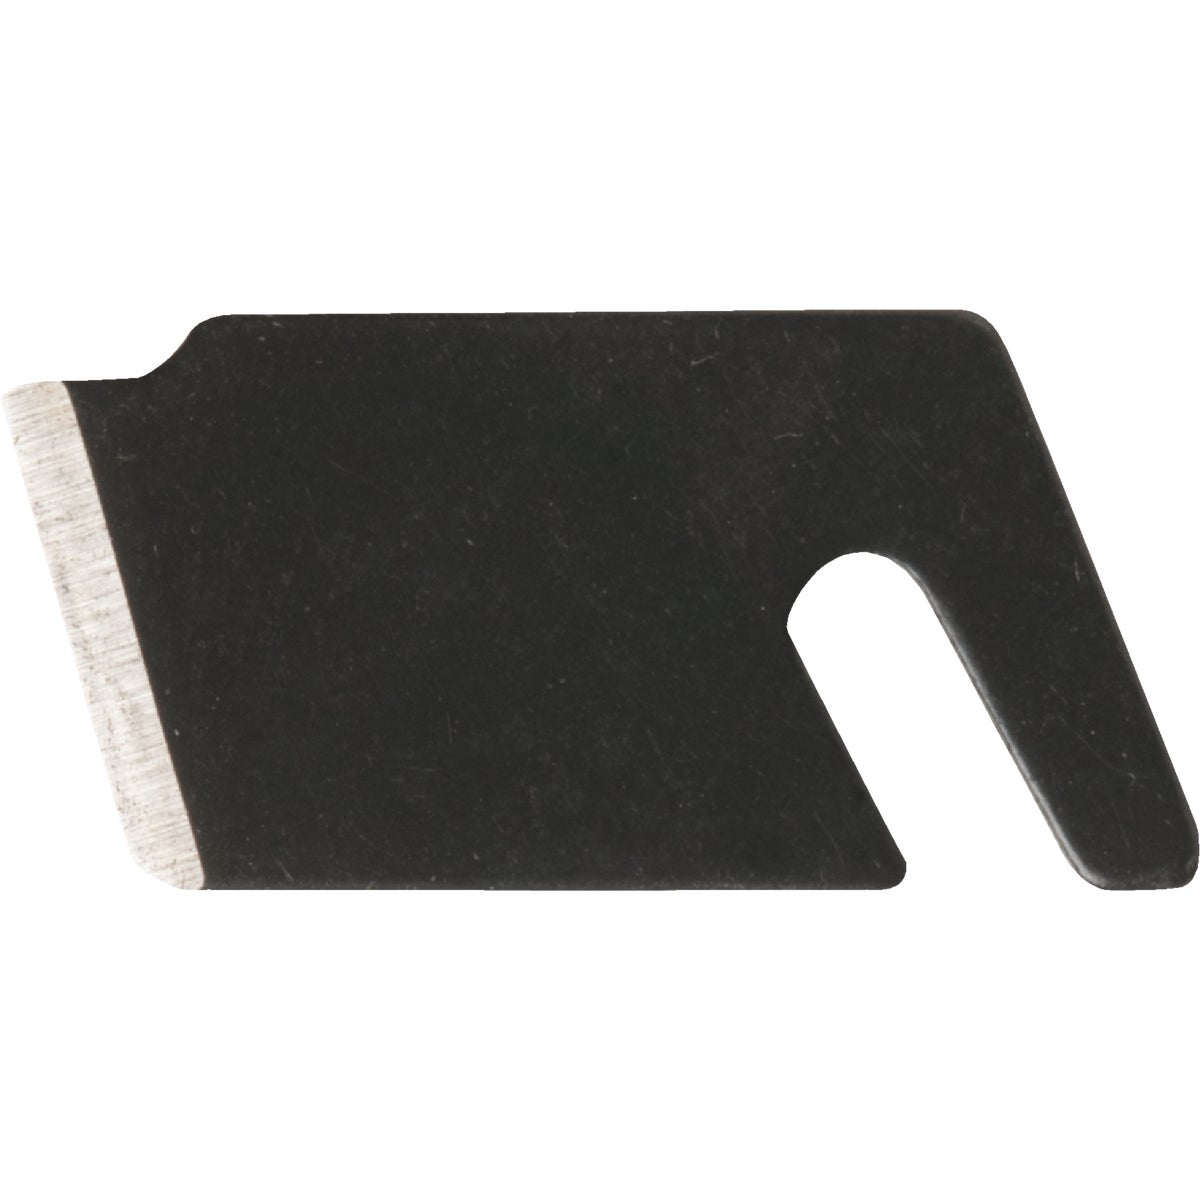 REPLACE CUTTER BLADE - 05-613 by Fletcher Terry Co